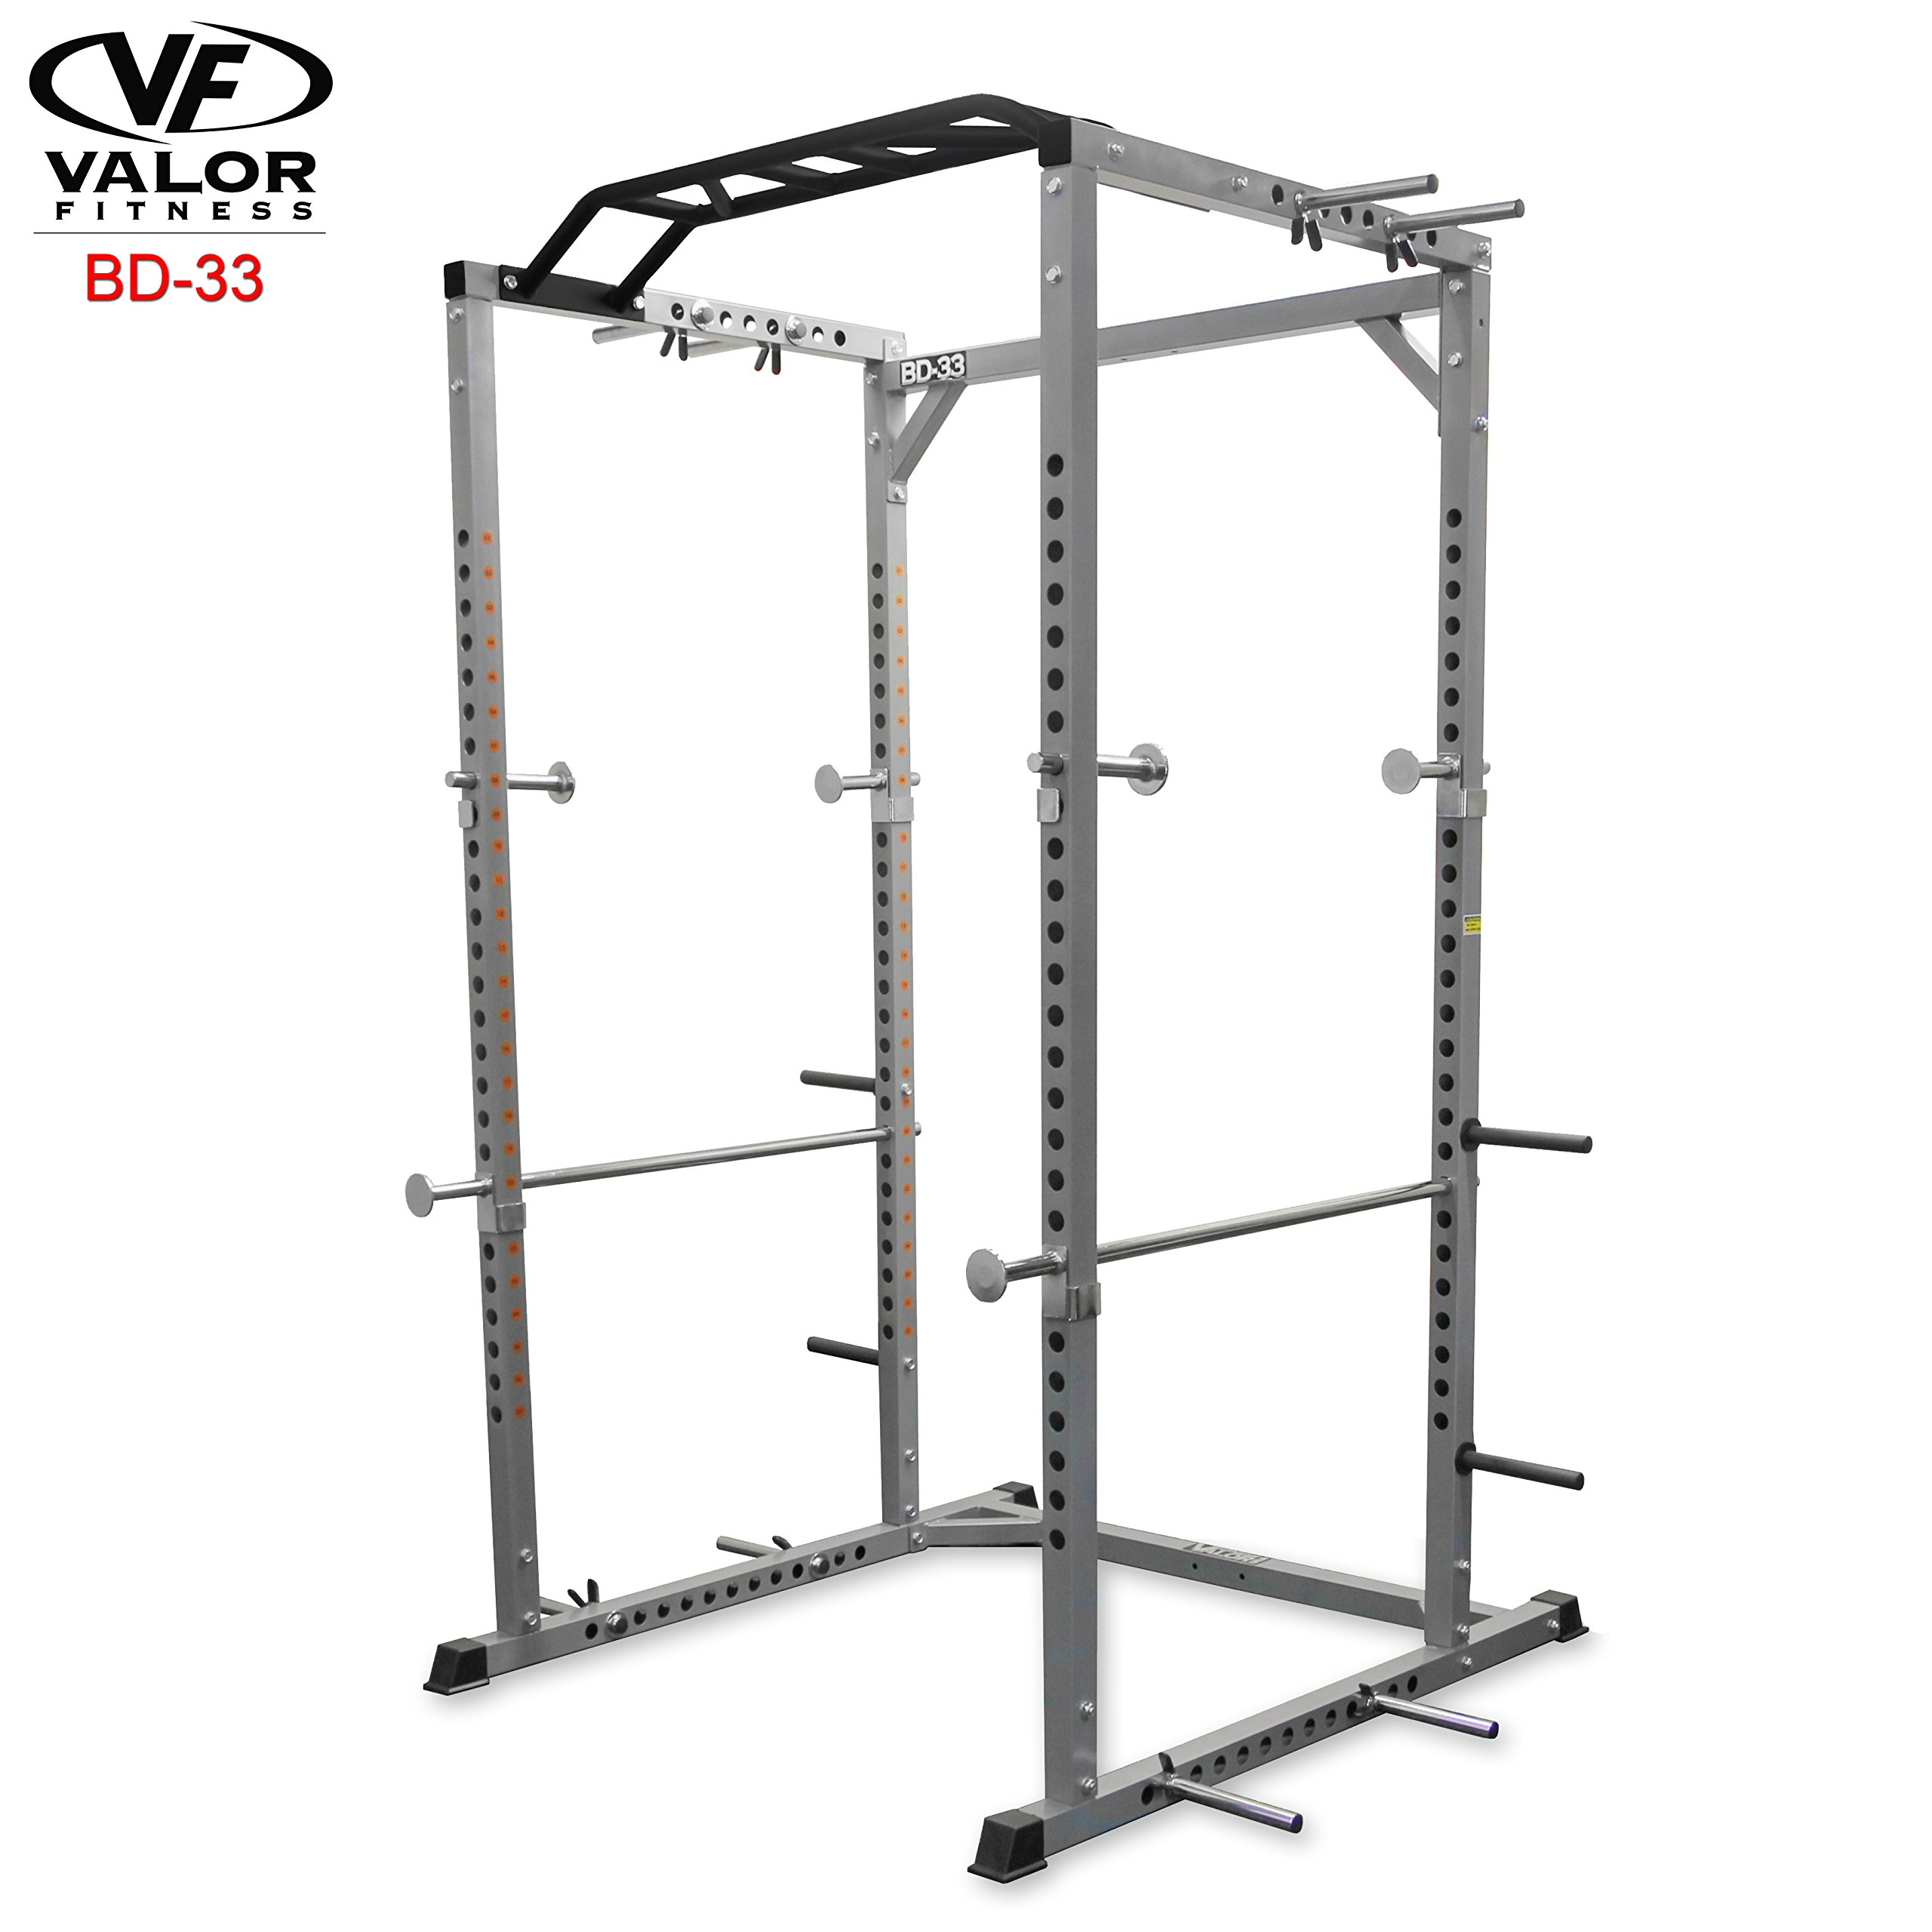 Valor Fitness BD-33 Heavy Duty Power Cage with Band Pegs and Multi-Grip Chin-Up … by Valor Fitness